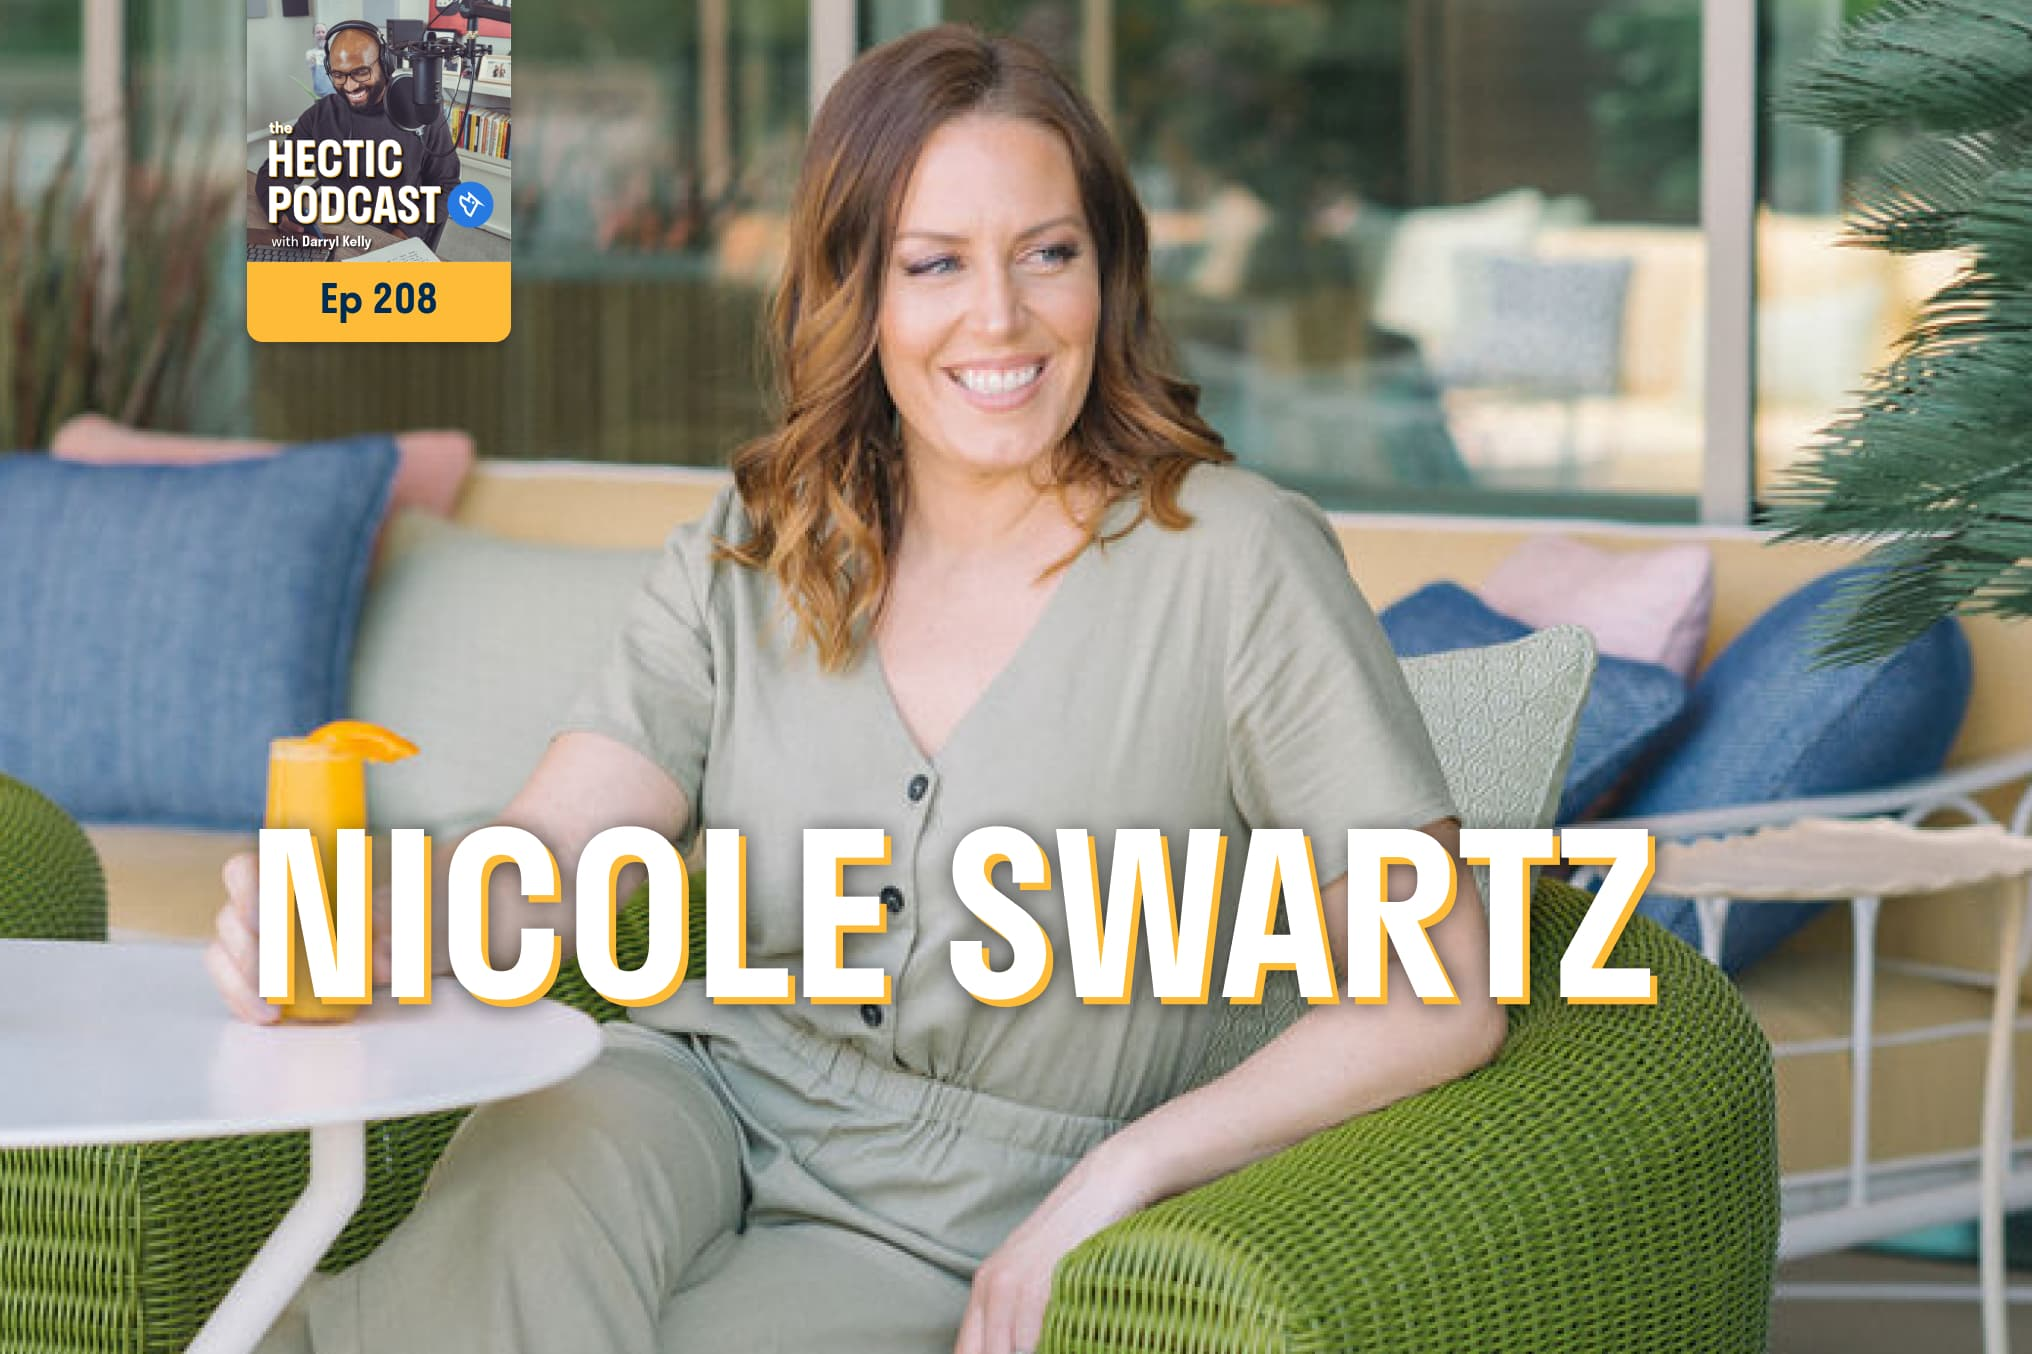 Nicole Swartz and legal advice for freelancers